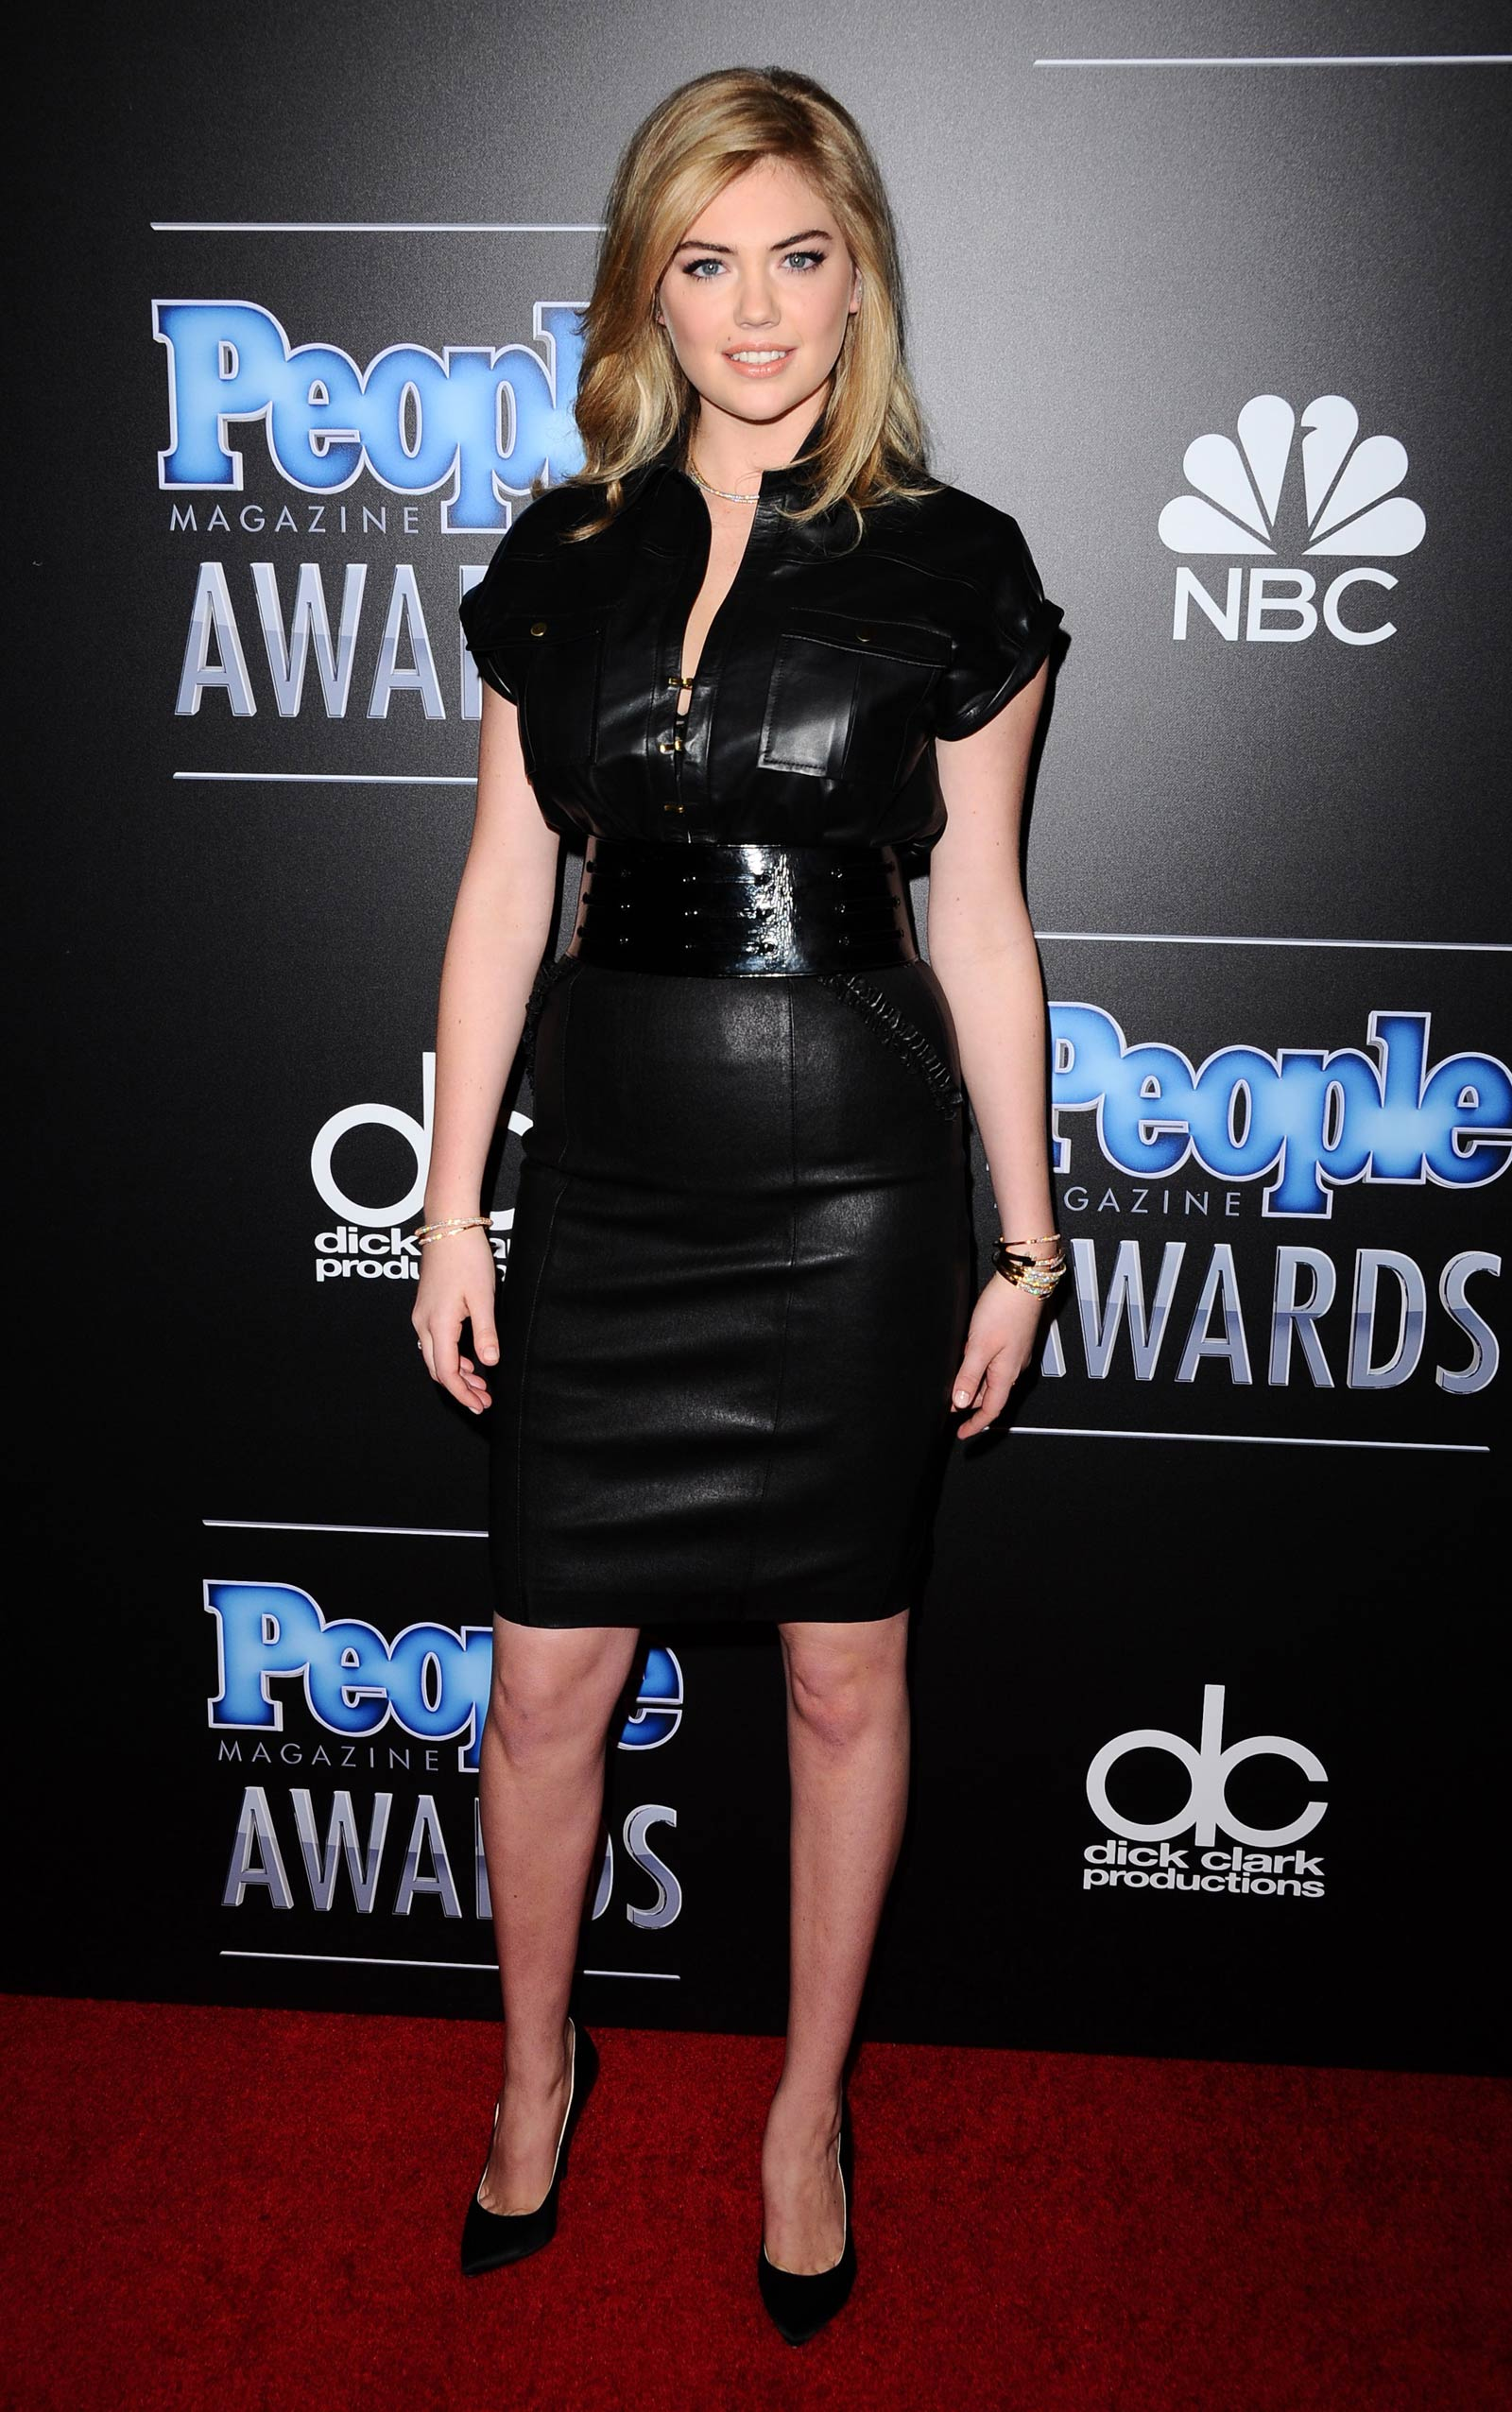 Kate Upton attends The PEOPLE Magazine Awards